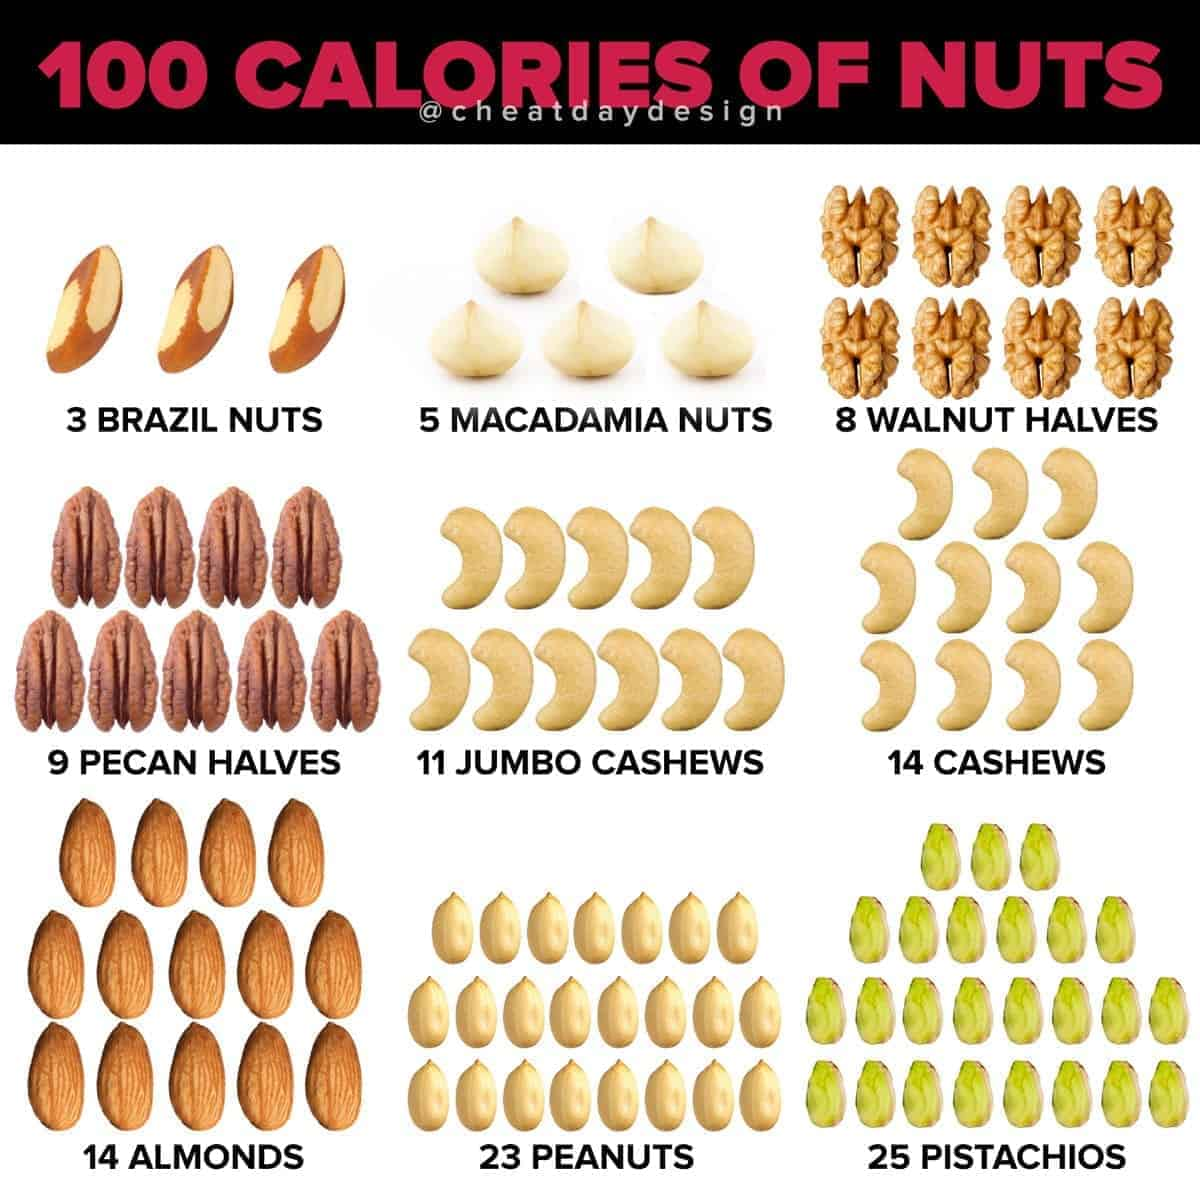 What 100 Calories Worth of Nuts Looks Like